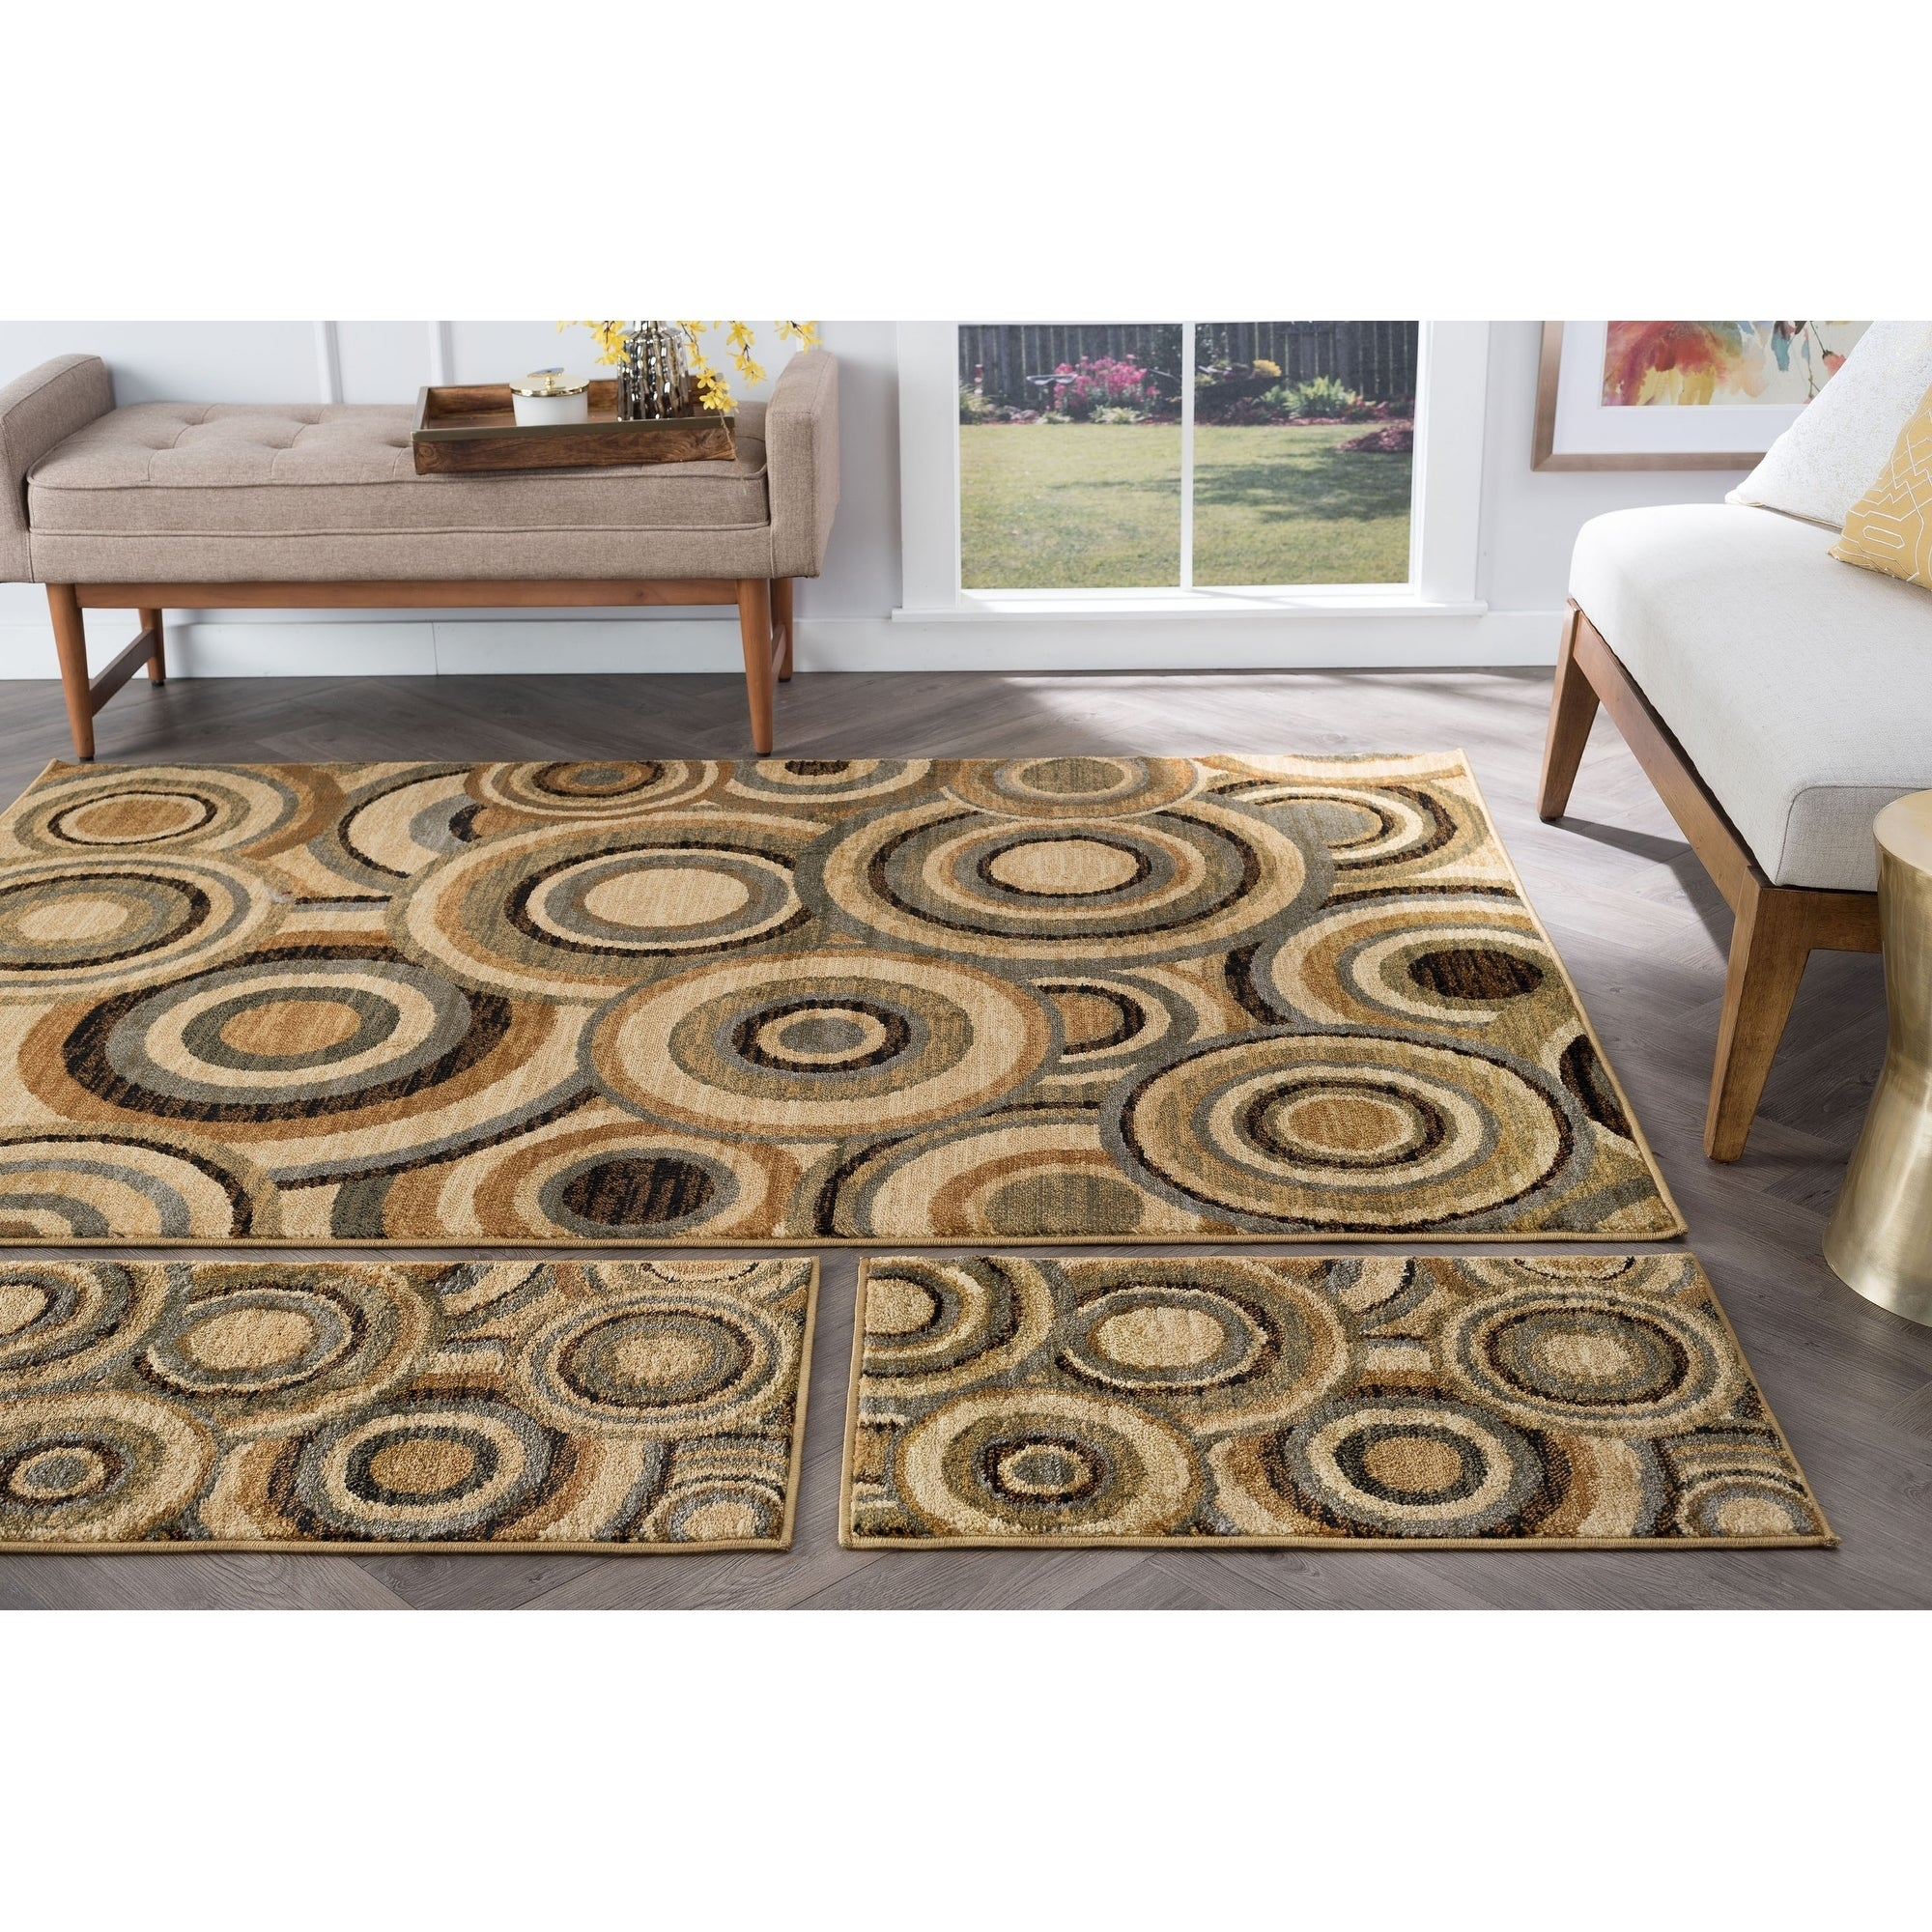 Alise Rhythm Multi 3-piece Contemporary Area Rug Set, Siz...